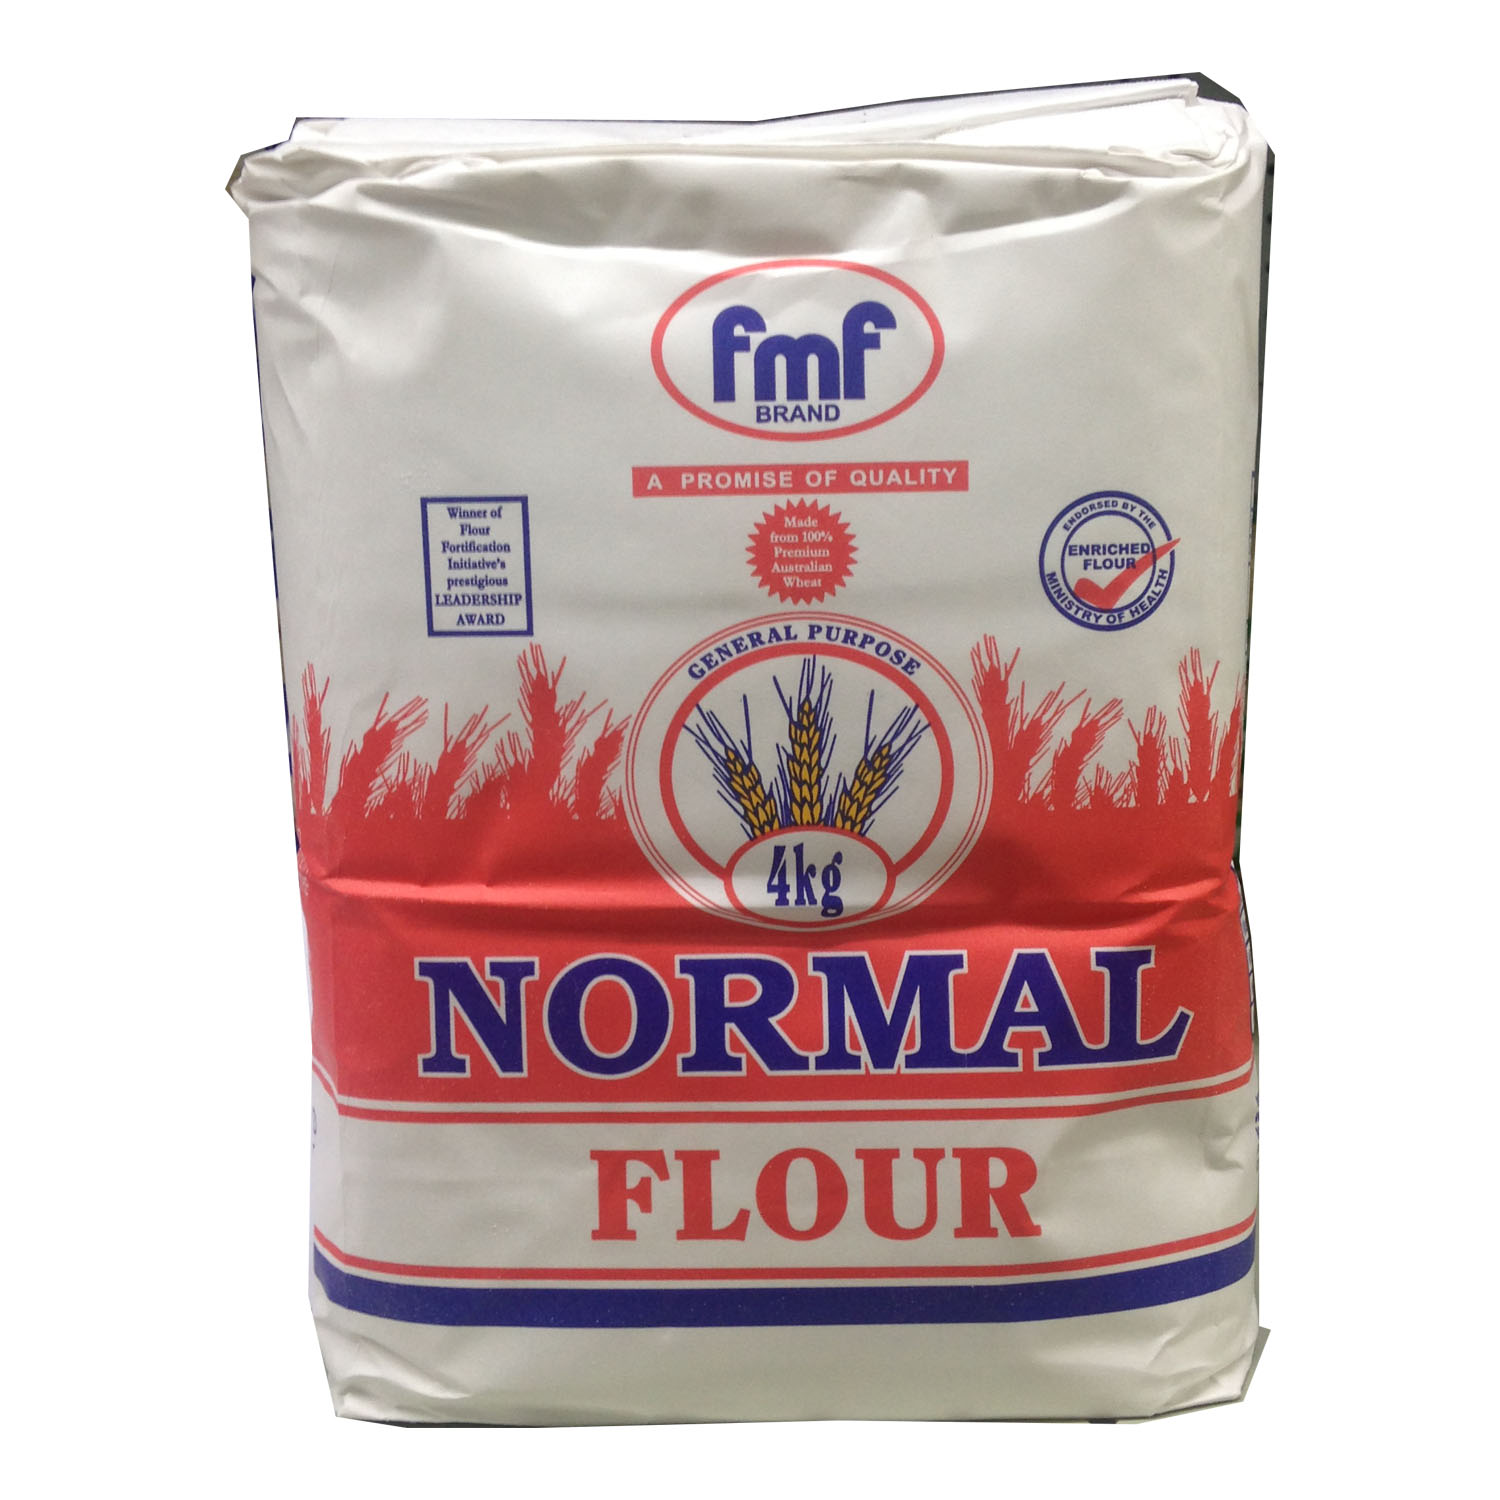 FMF Normal Flour 4kg